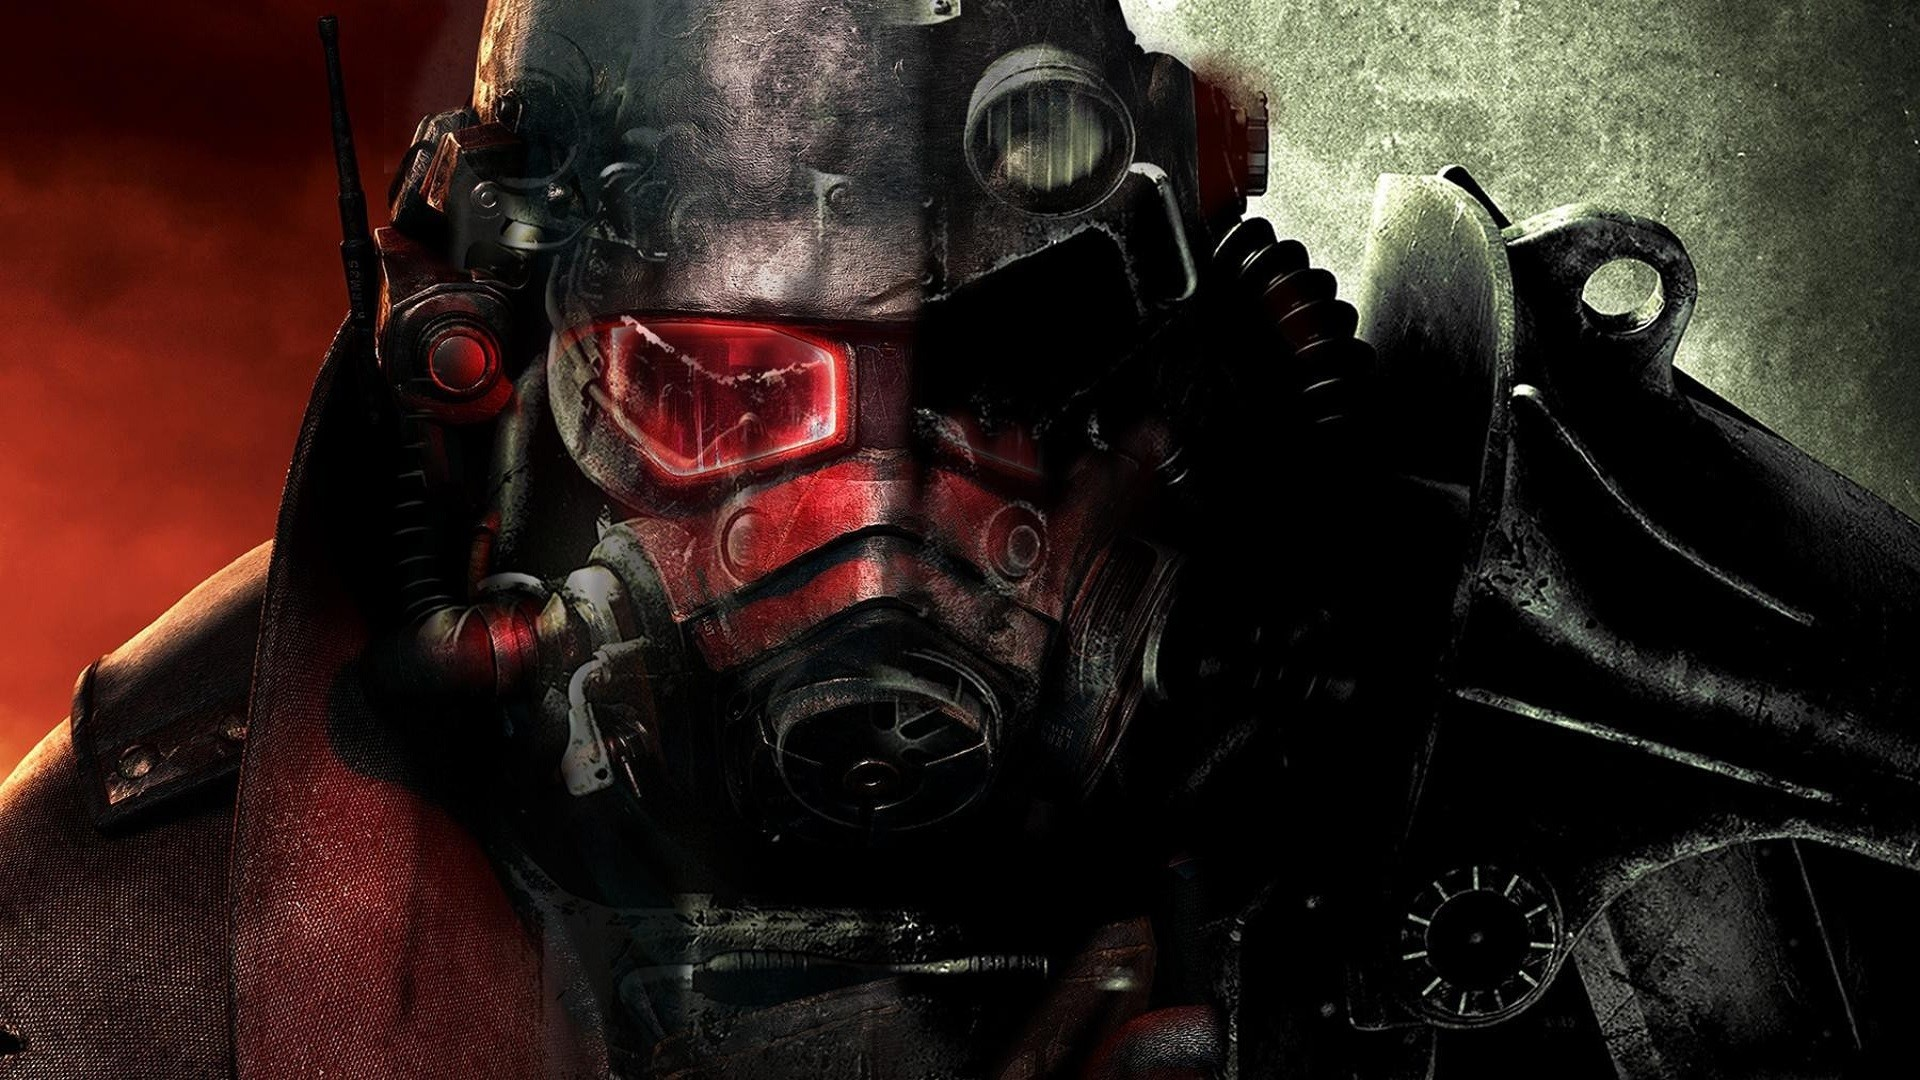 Free Download Wallpapers Fallout Brotherhood Of Steel Fallout New